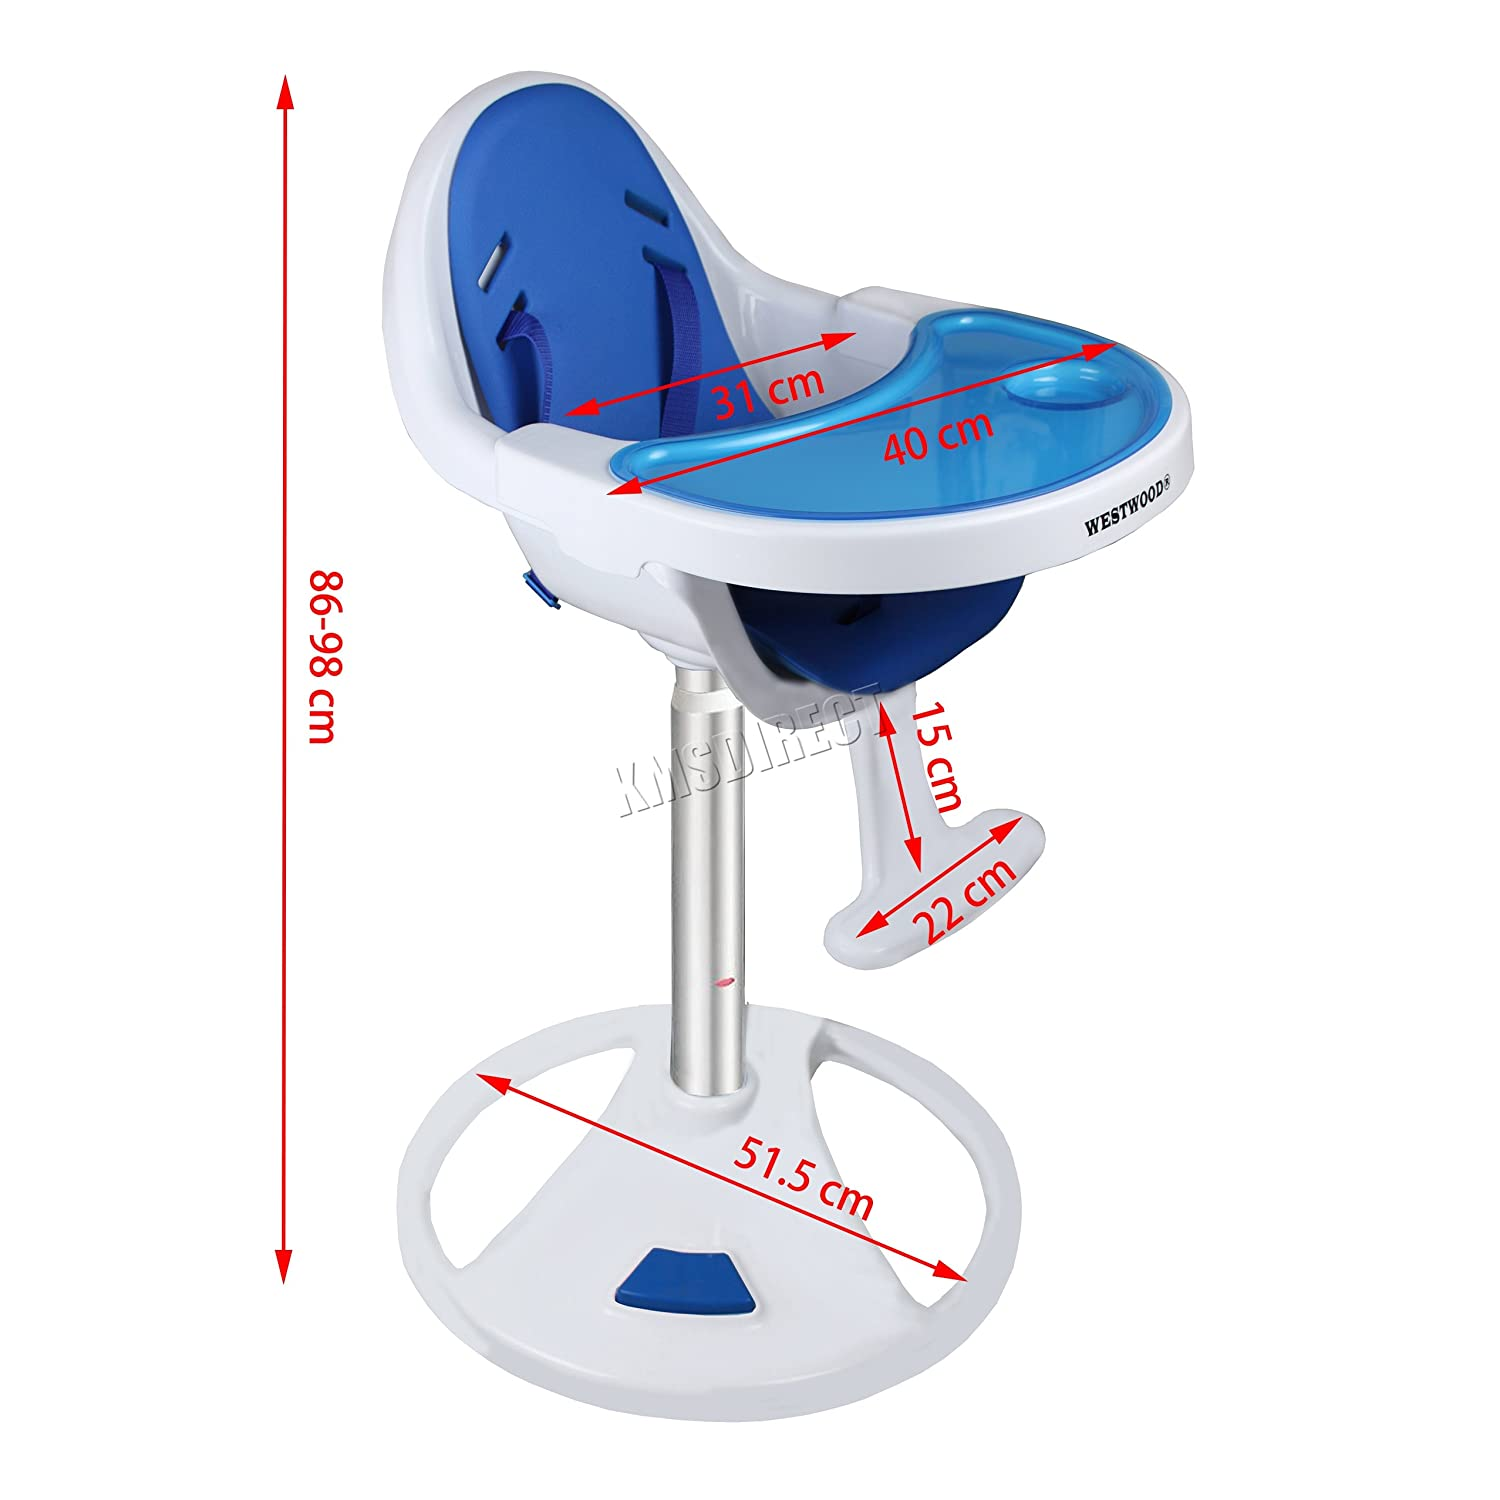 WestWood Baby High Chair 360 Infant Feeding Booster Adjustable Height Seat Swivel Toddler Table-Mounted Nursery Furniture BHC03 Blue